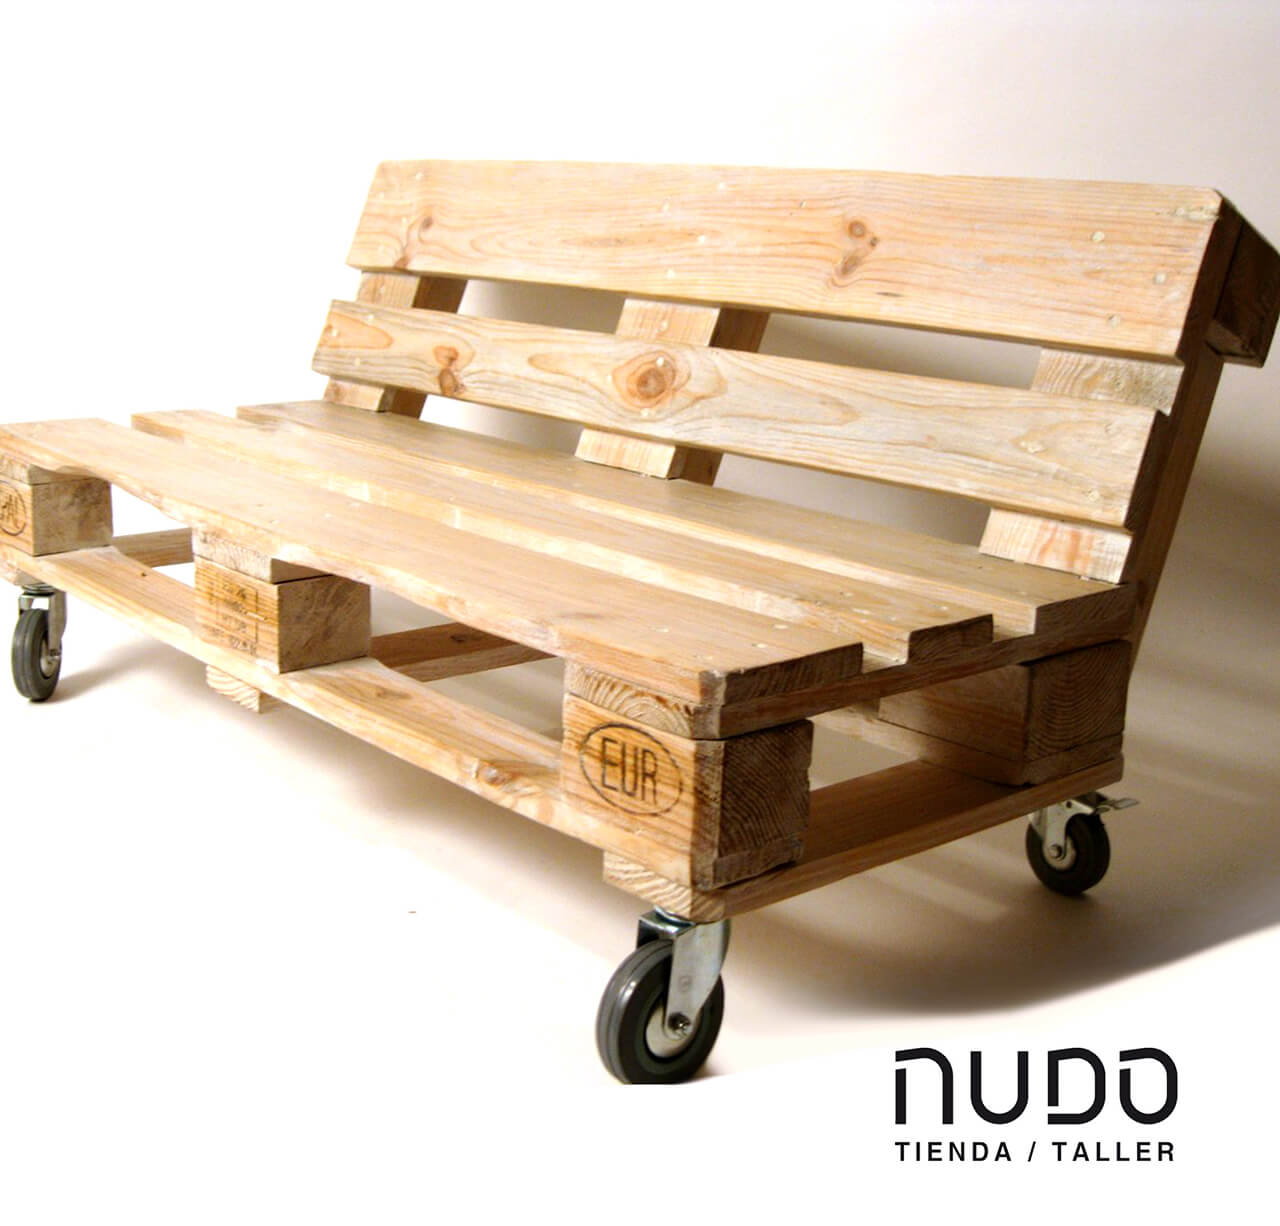 Pallet furniture images galleries - Modelos de sofas ...